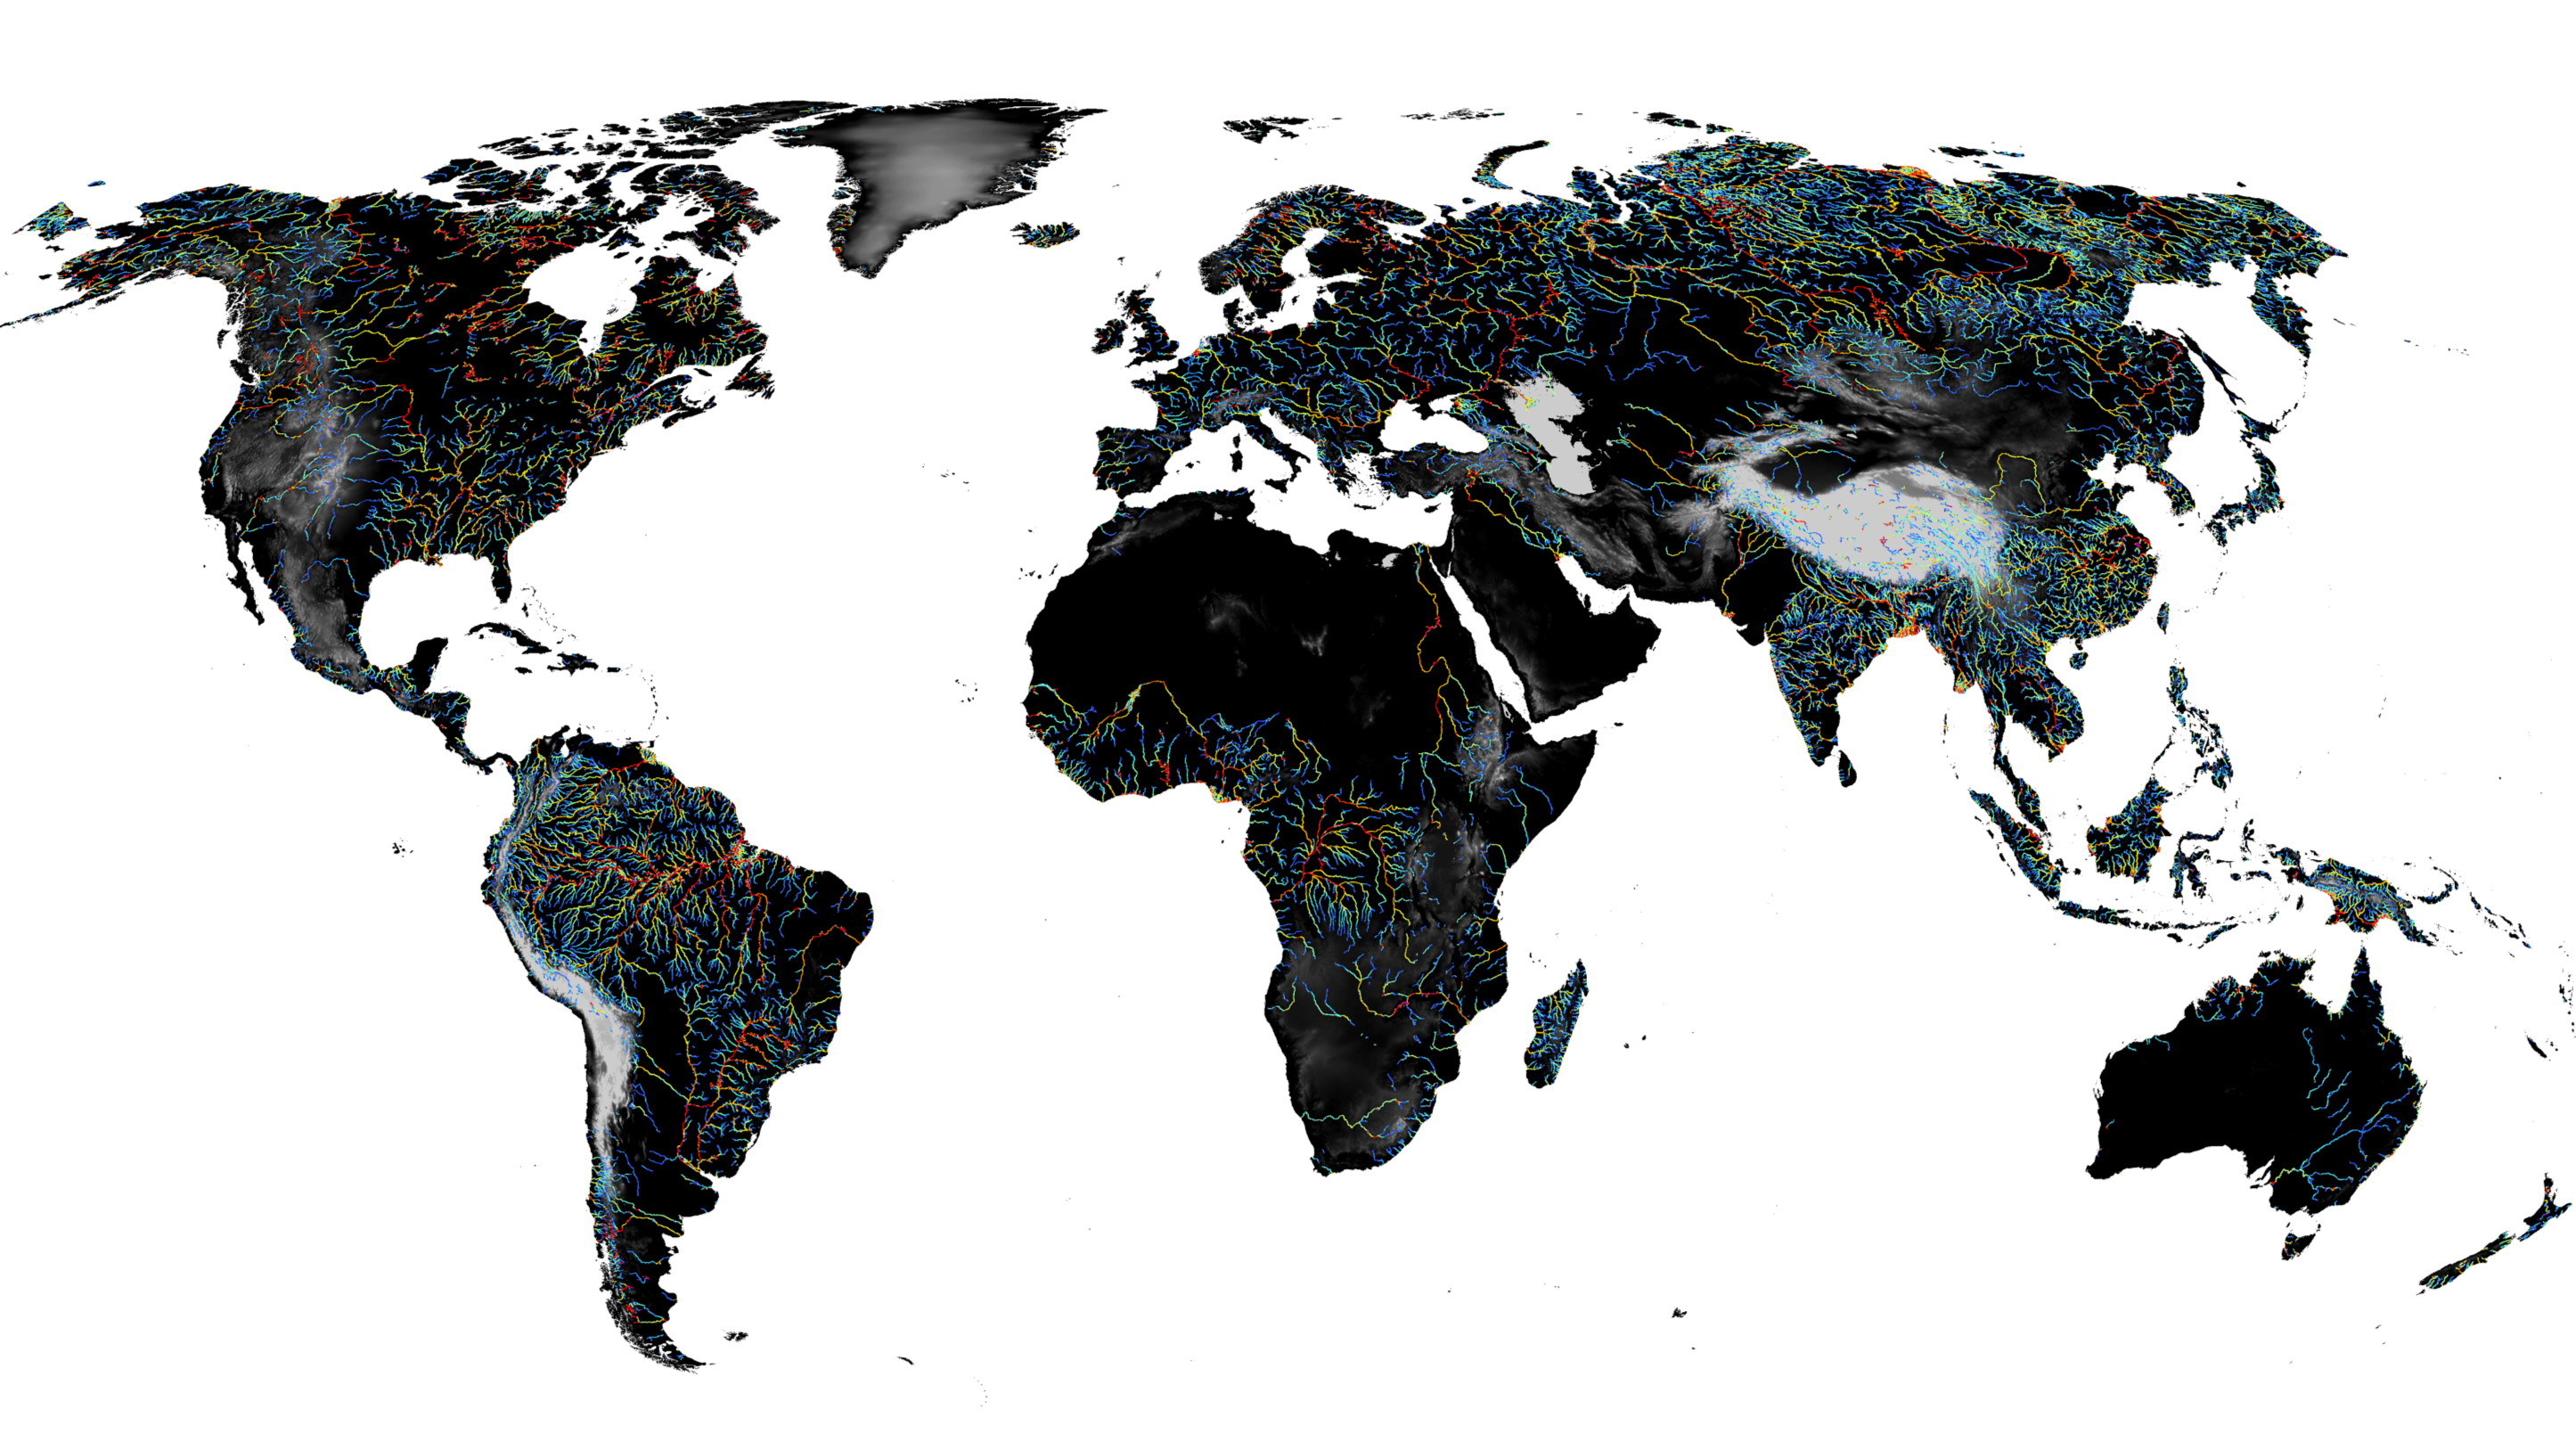 Satellite imagery shows surface area of rivers and streams ... on zoom world map, nasa world map, cricket world map, topographic world map, weathered world map, pangea map, china coal power plants map, neon world map, glaciers on world map, solar world map, blue world map, hd world map, telecom world map, endangered animals around the world map, footprint world map, security world map, digital world map, ham radio world map, planet world map,